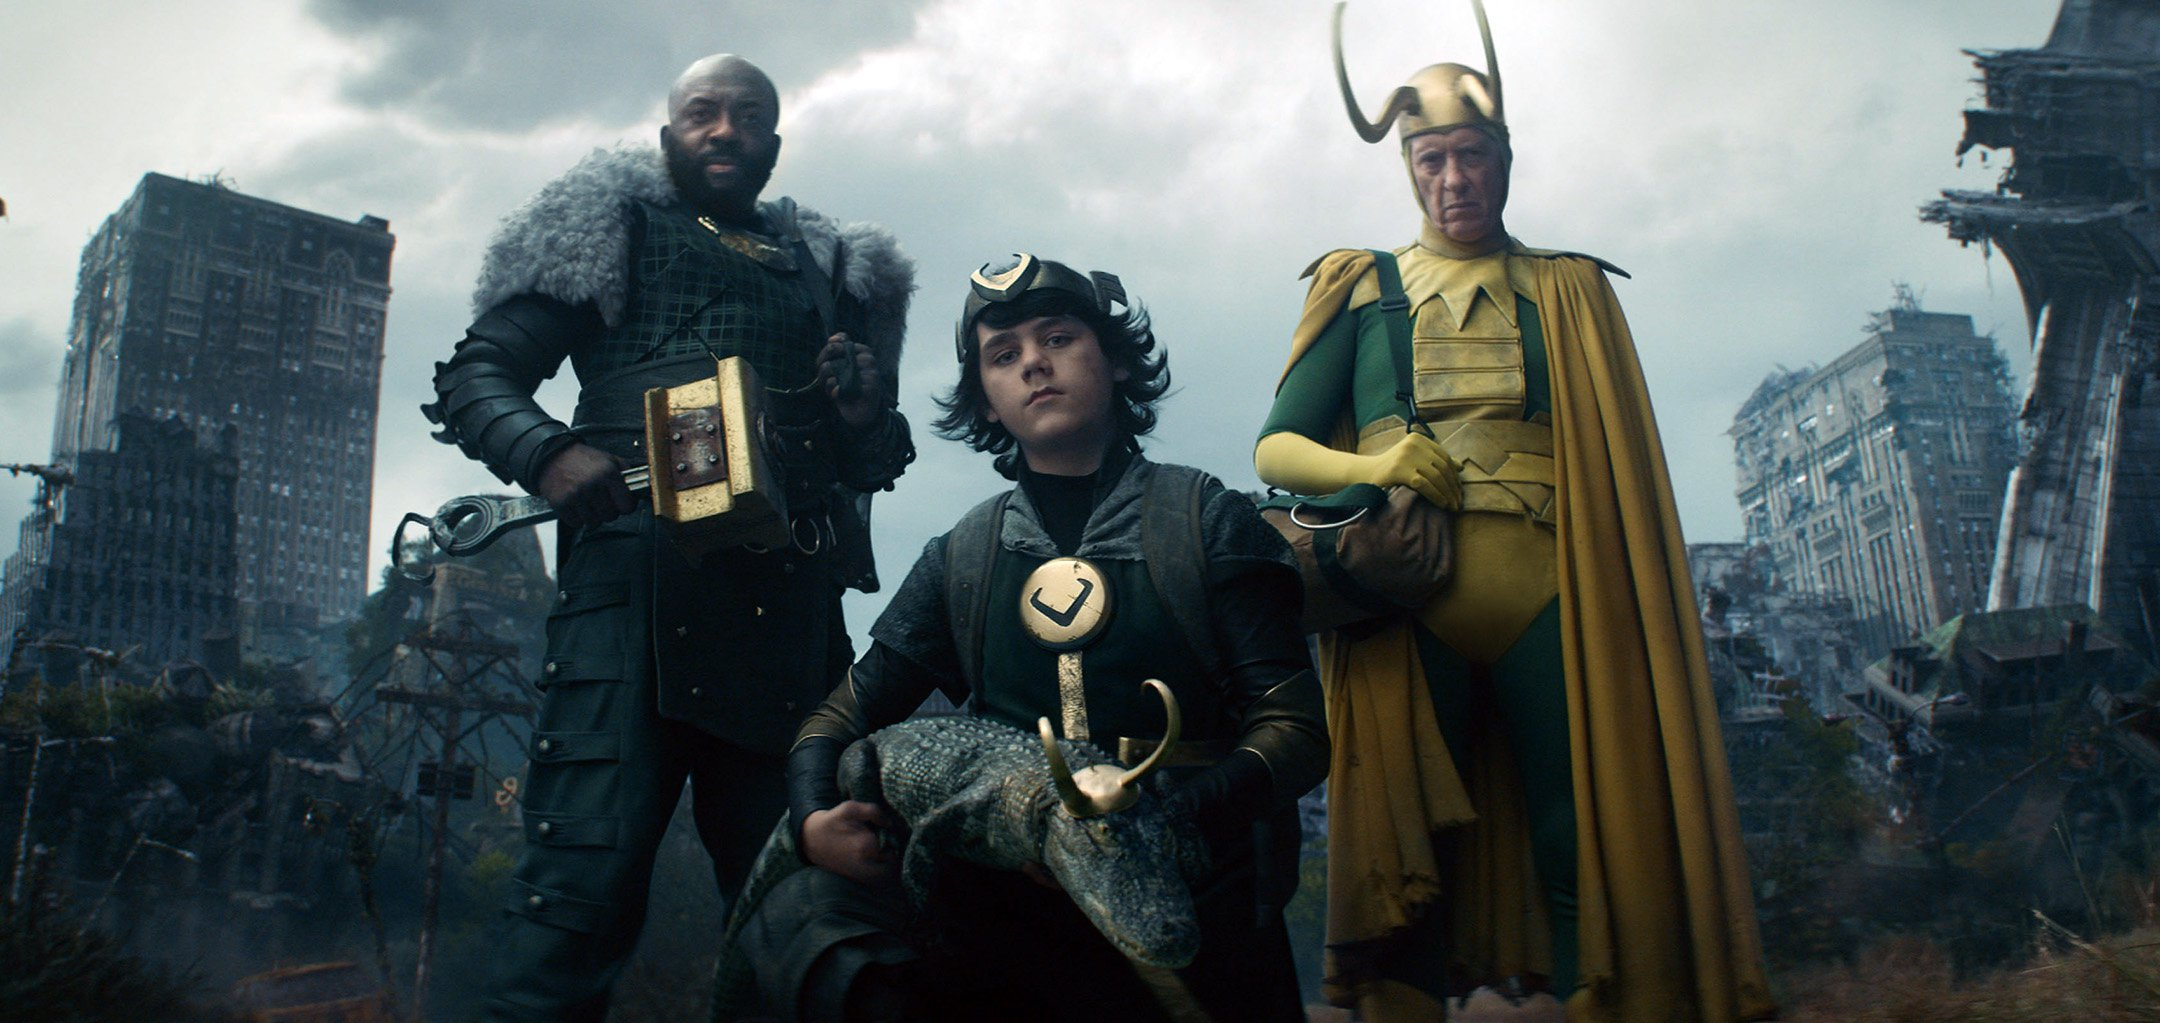 Deobia Oparei, Jack Veal and Richard E Grant in a promotional shot from 'Loki' (2021- ).jpg